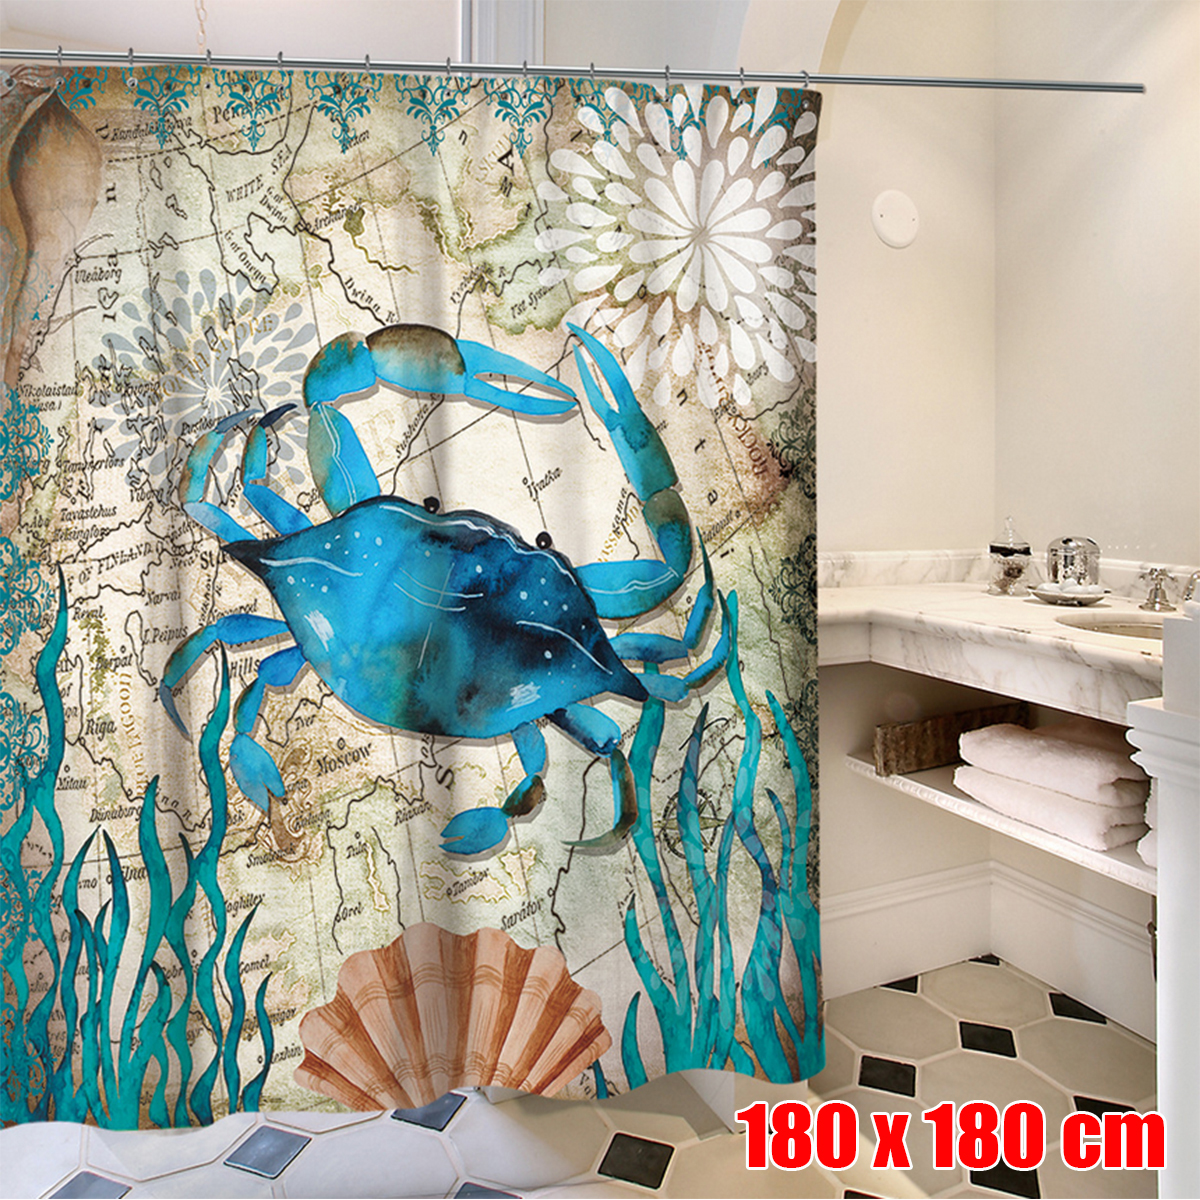 Waterproof Fabric Hooks Bathroom Dinosaur Shower Curtain